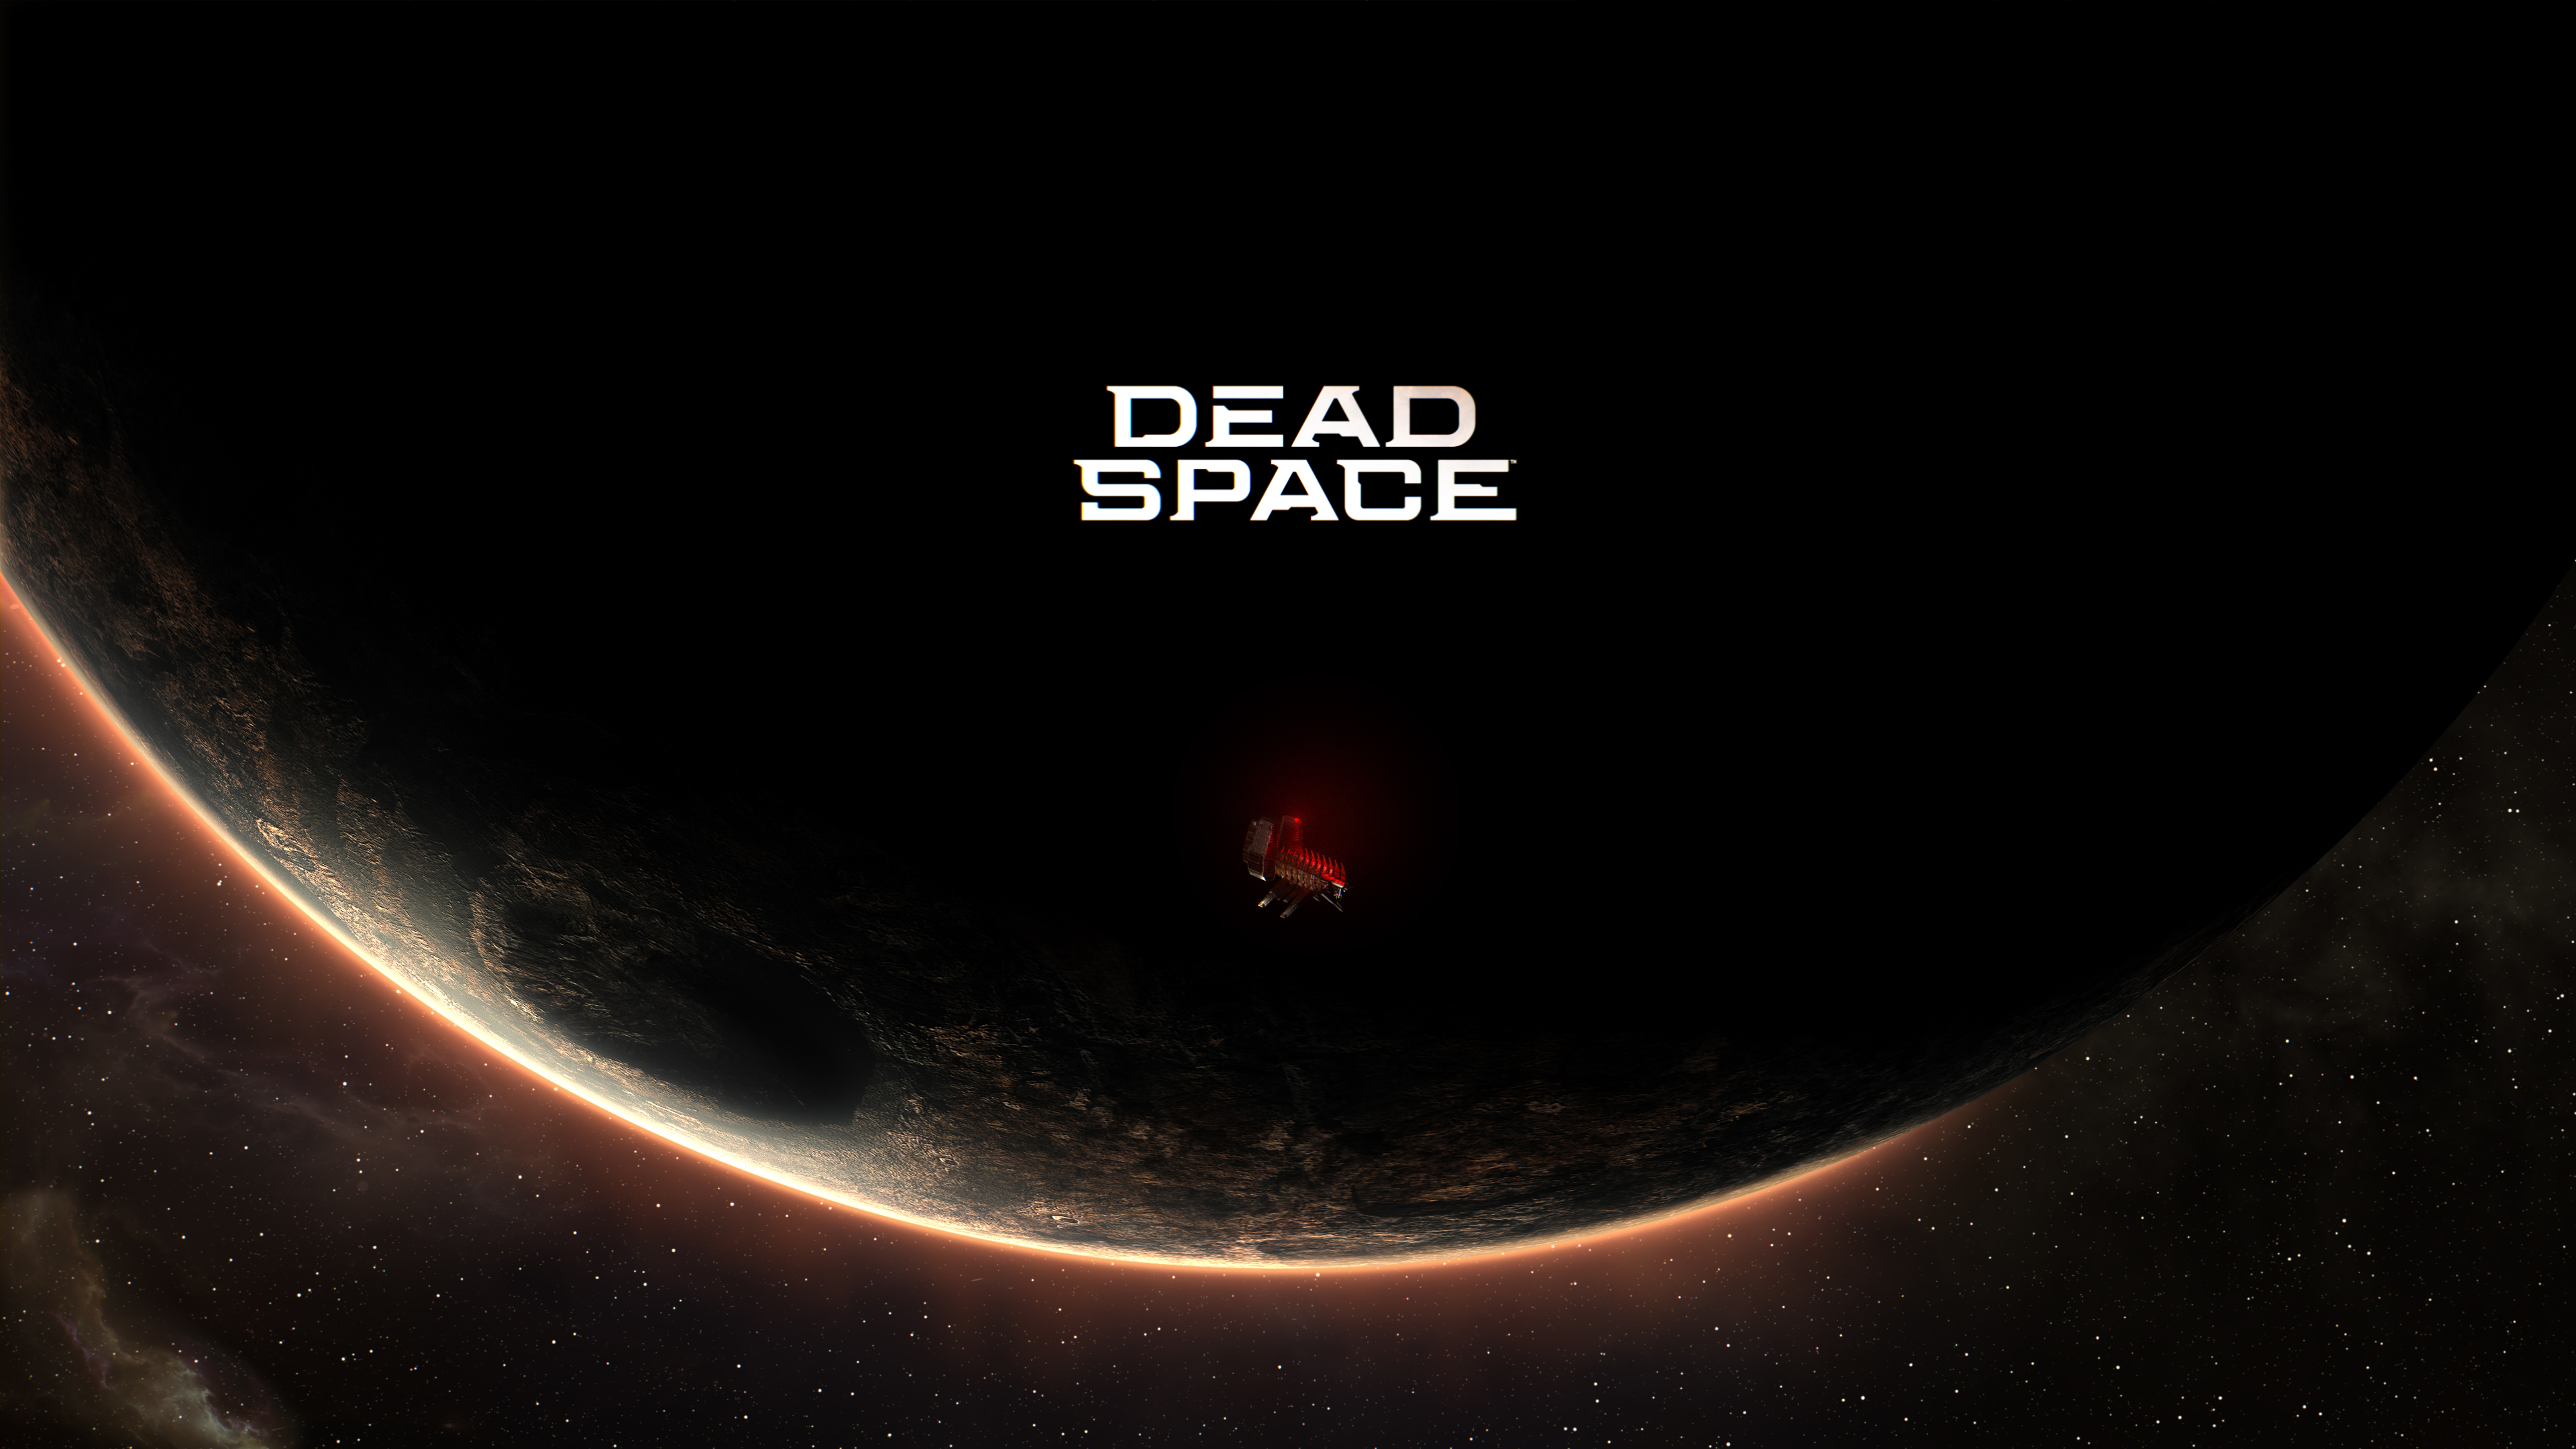 Dead Space 2021 07 22 21 002